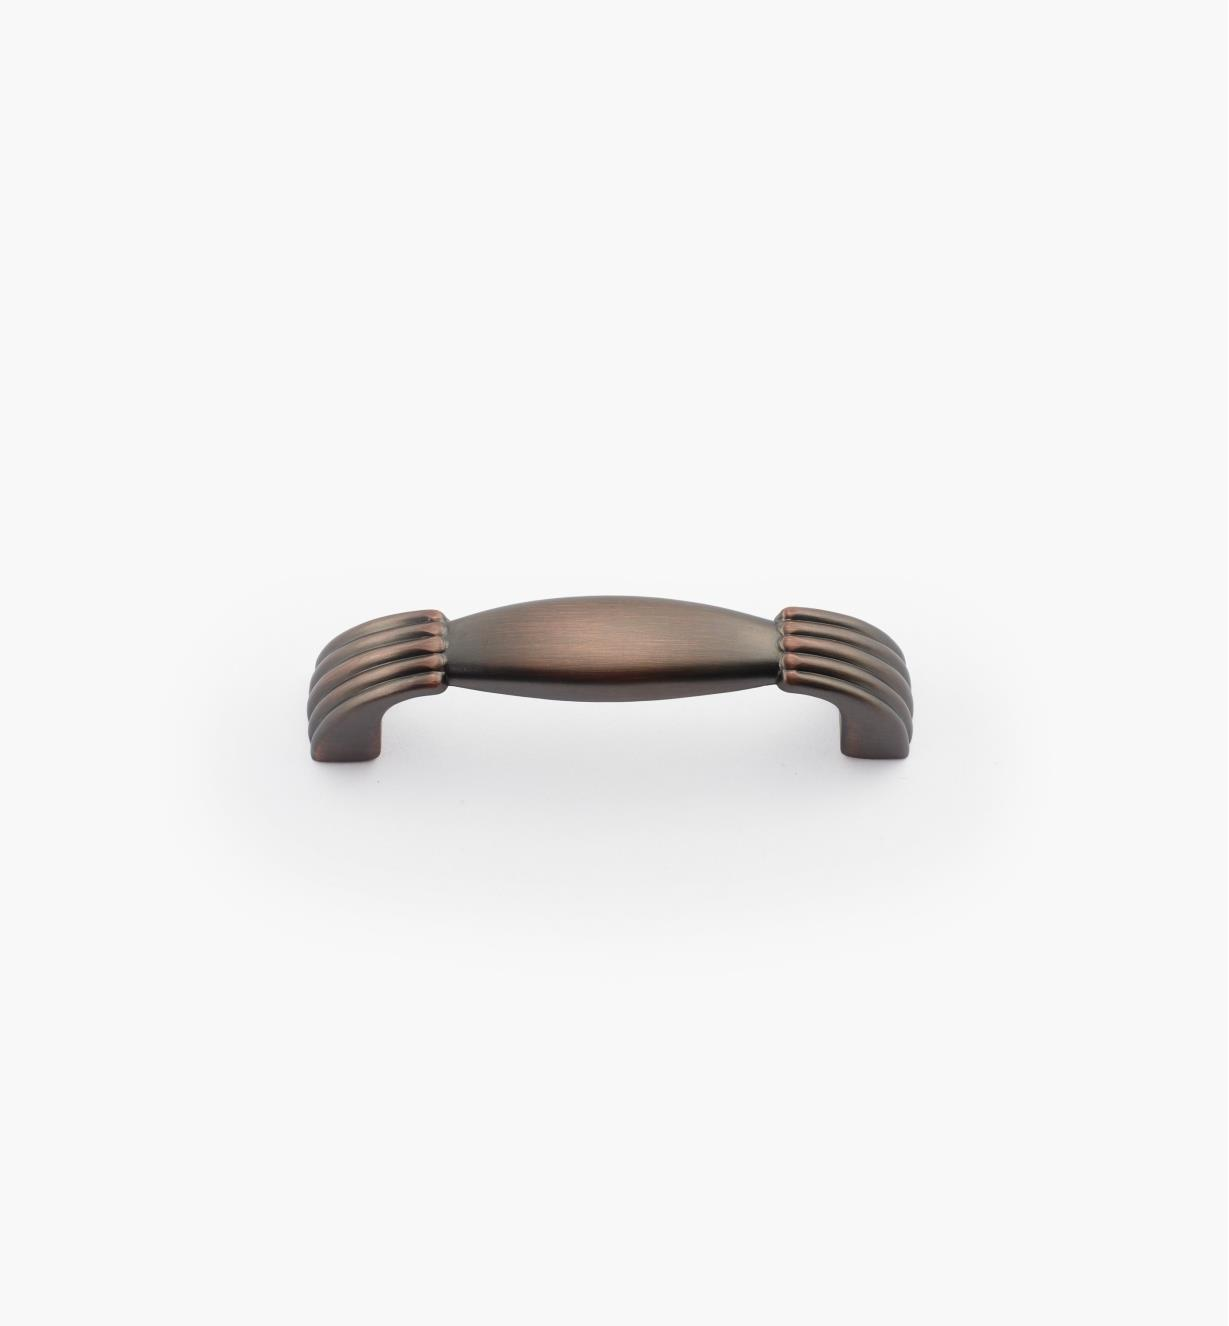 01W8470 - Small Weathered Bronze Handle